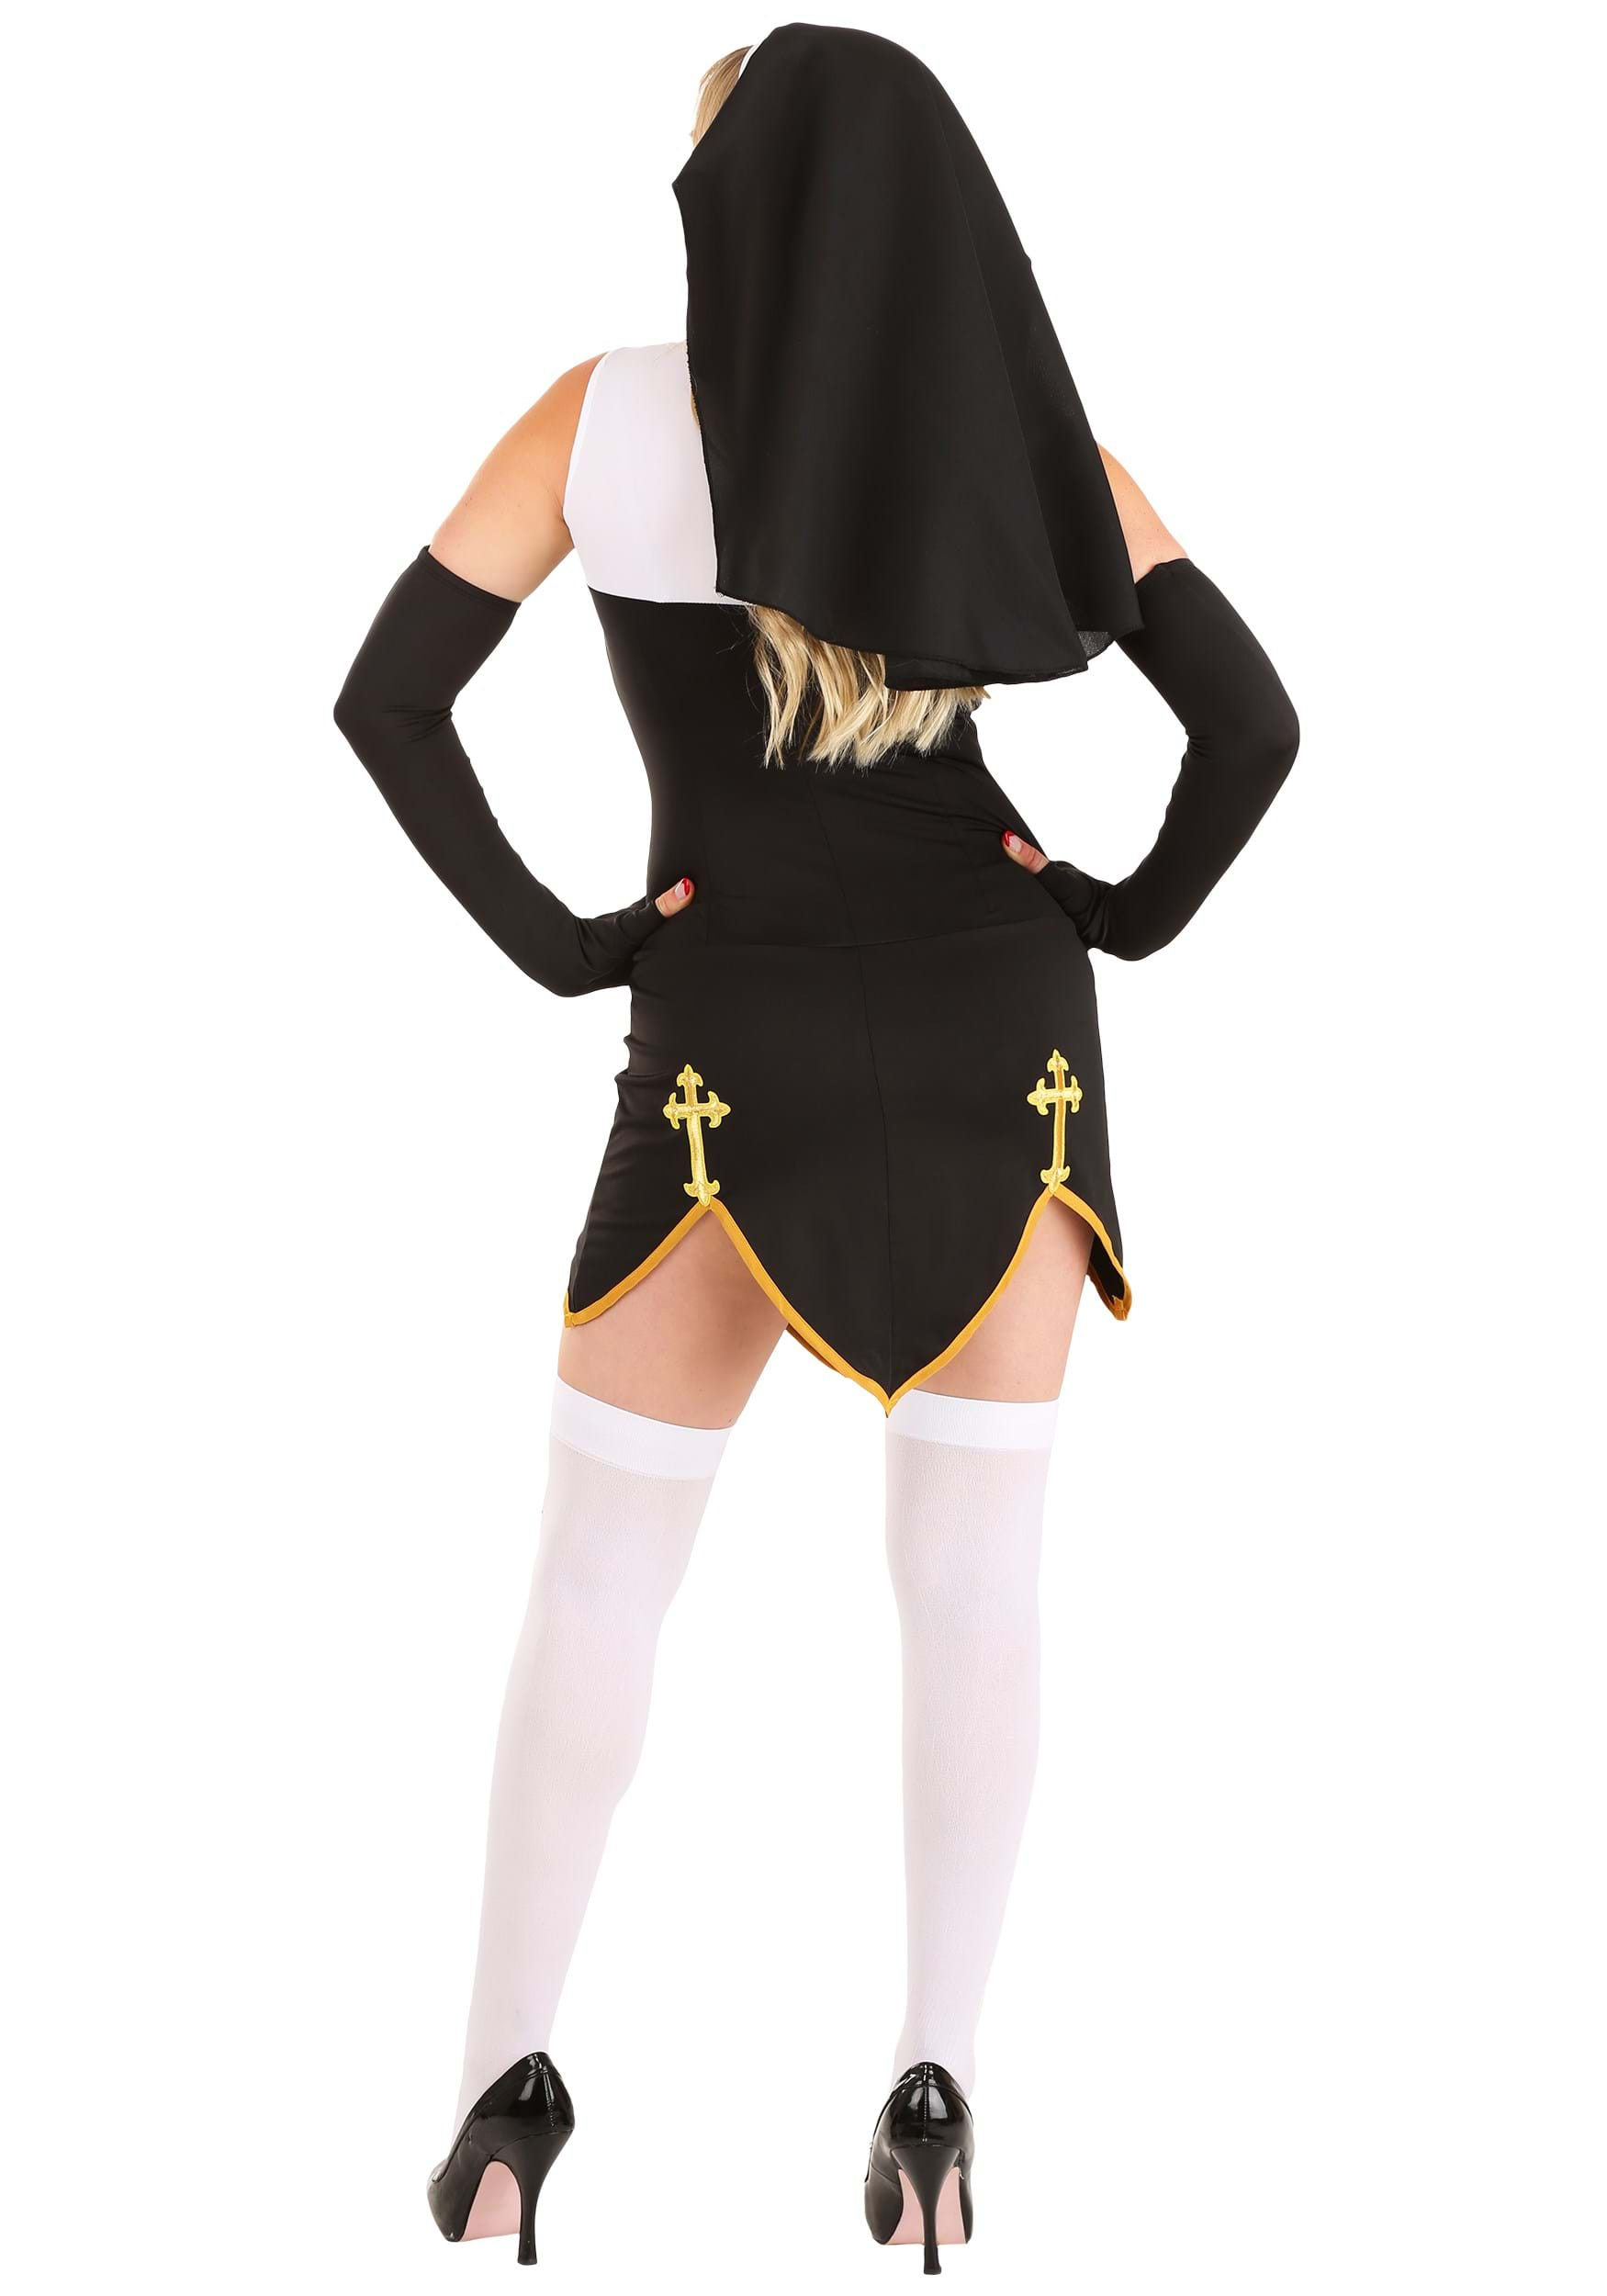 sc 1 st  Halloween Costumes UK & Bad Habit Nun Costume